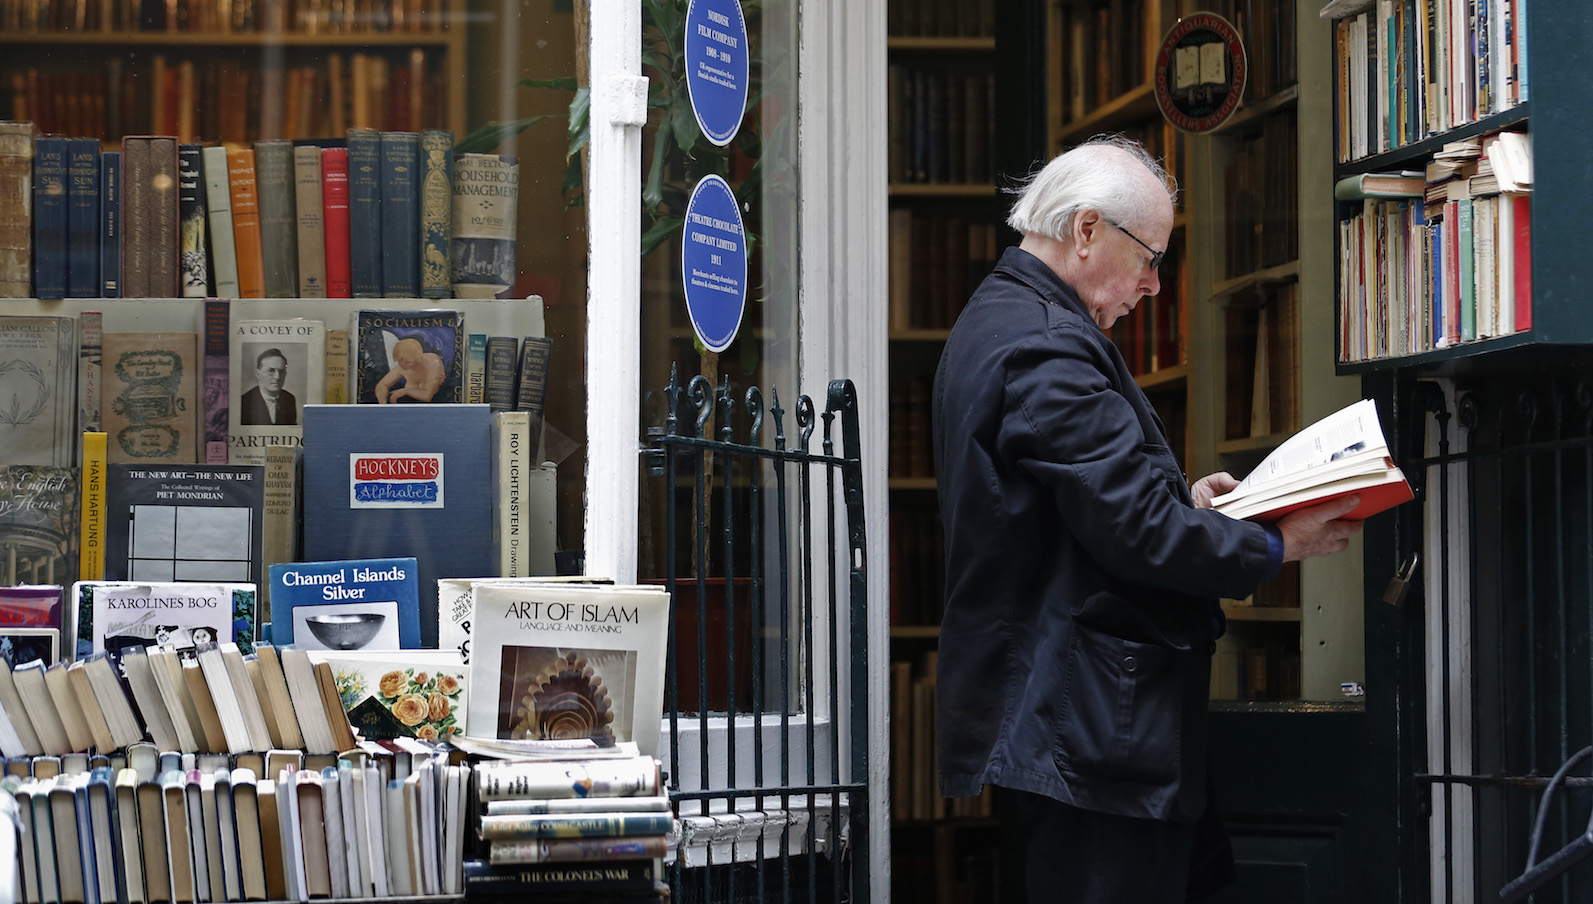 A man reads a book outside an antique bookshop in central London